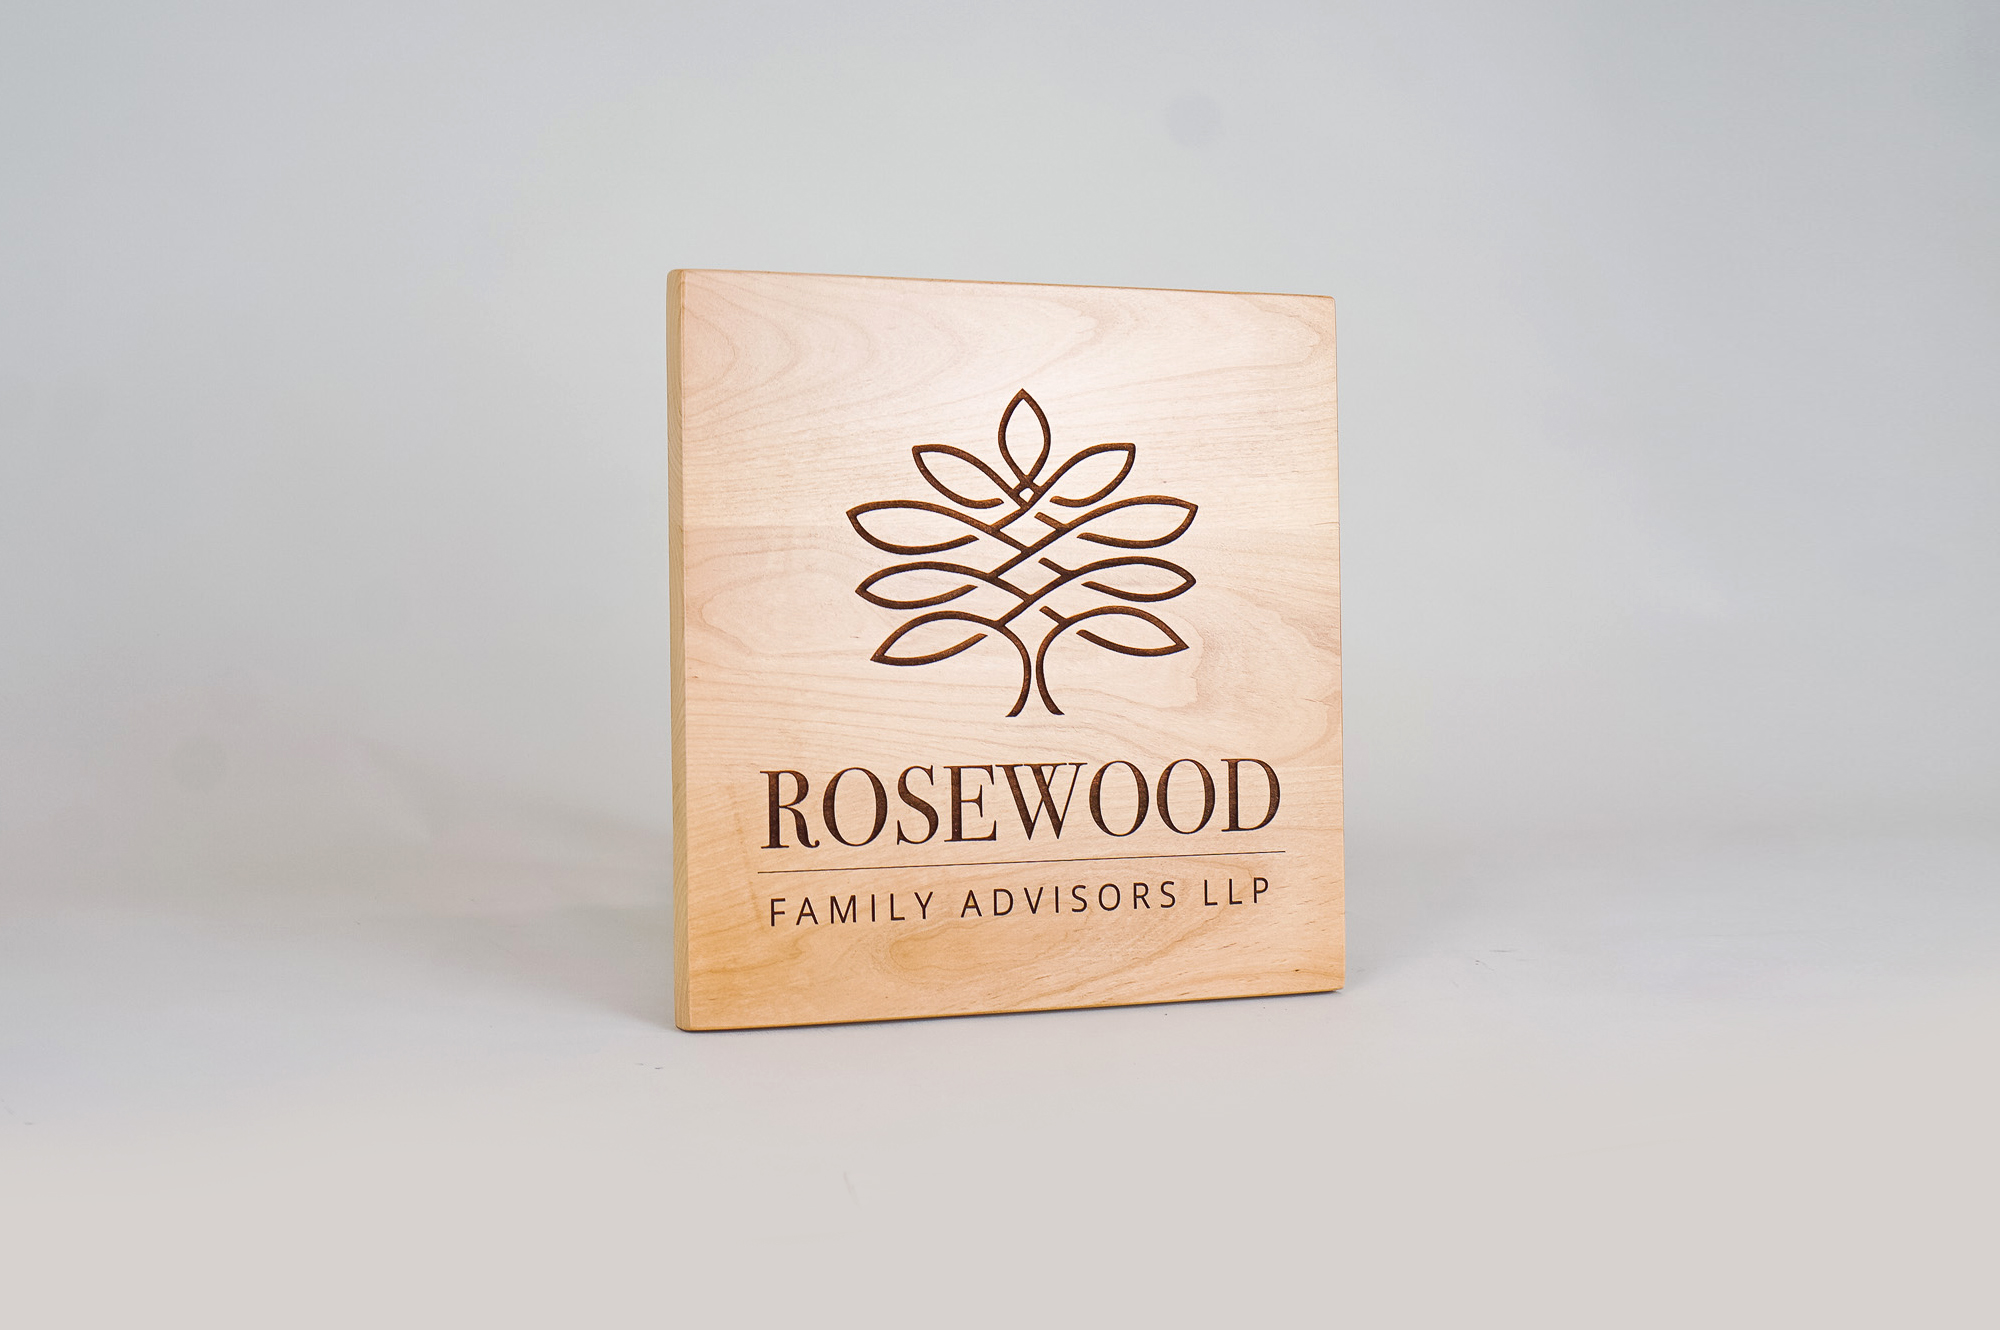 Etched light wood sign for Rosewood Family Advisors, a Palo Alto based company offering a diverse range of family office services.